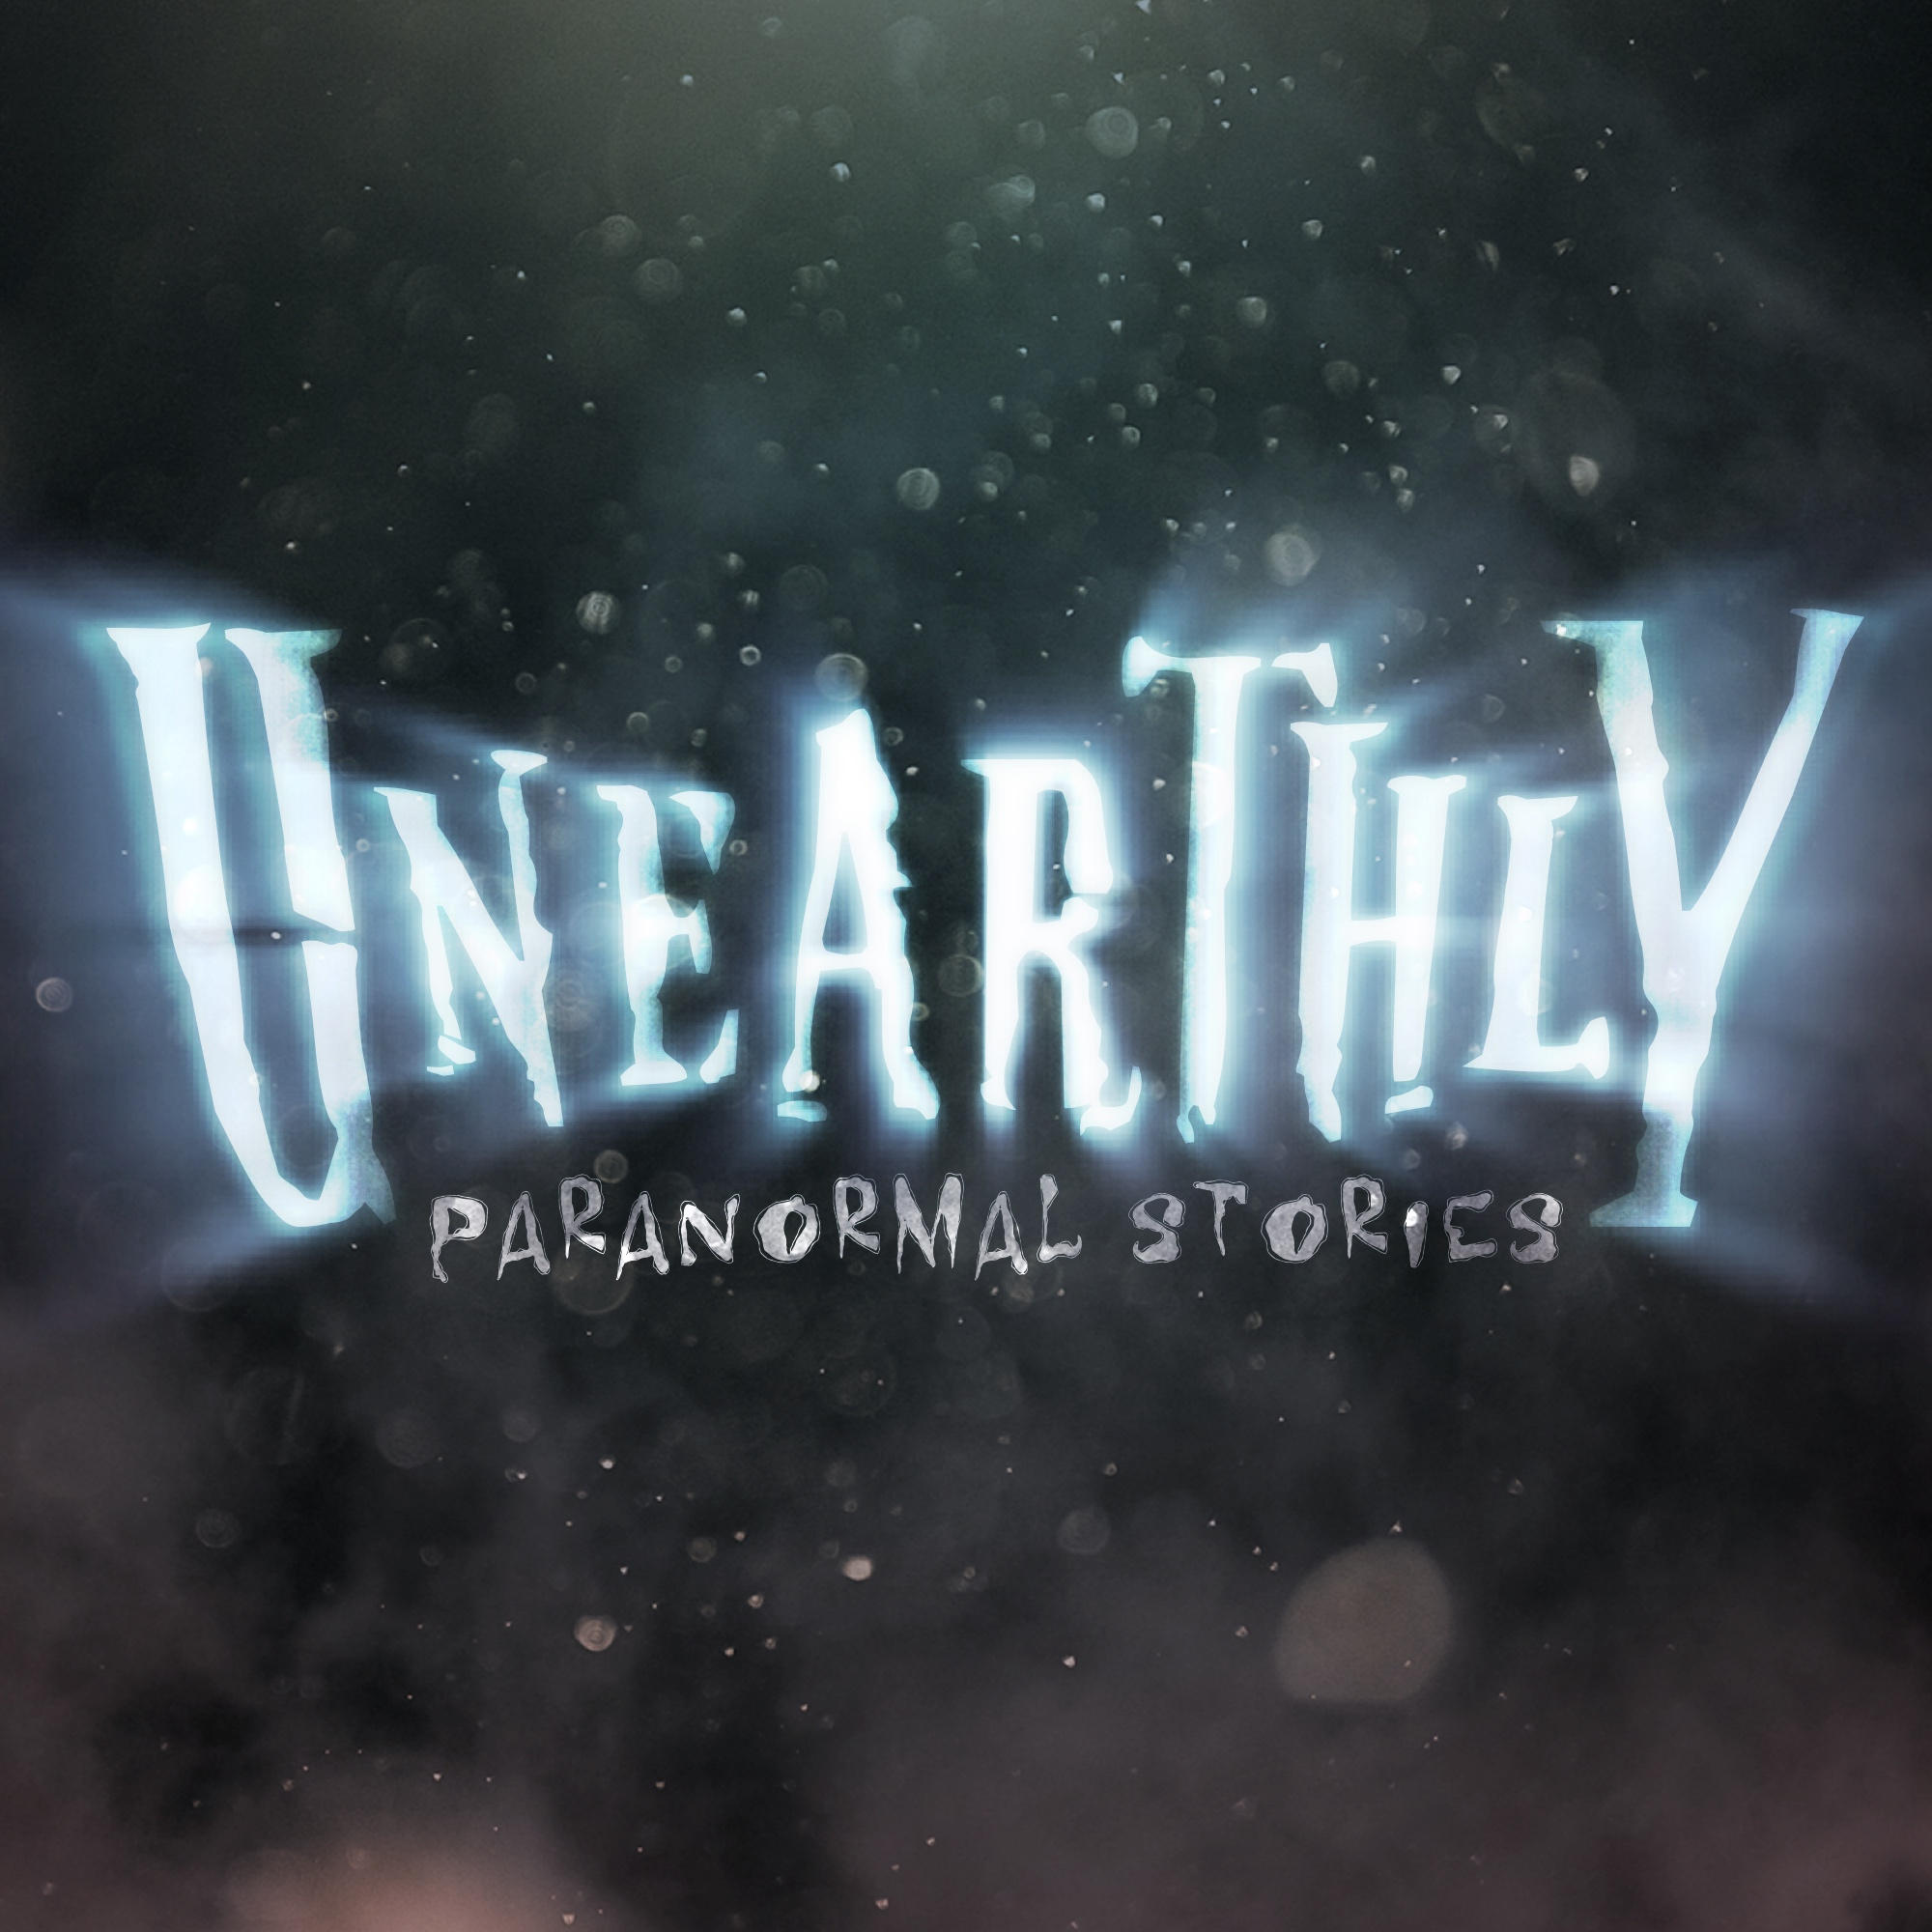 Unearthly Paranormal Stories